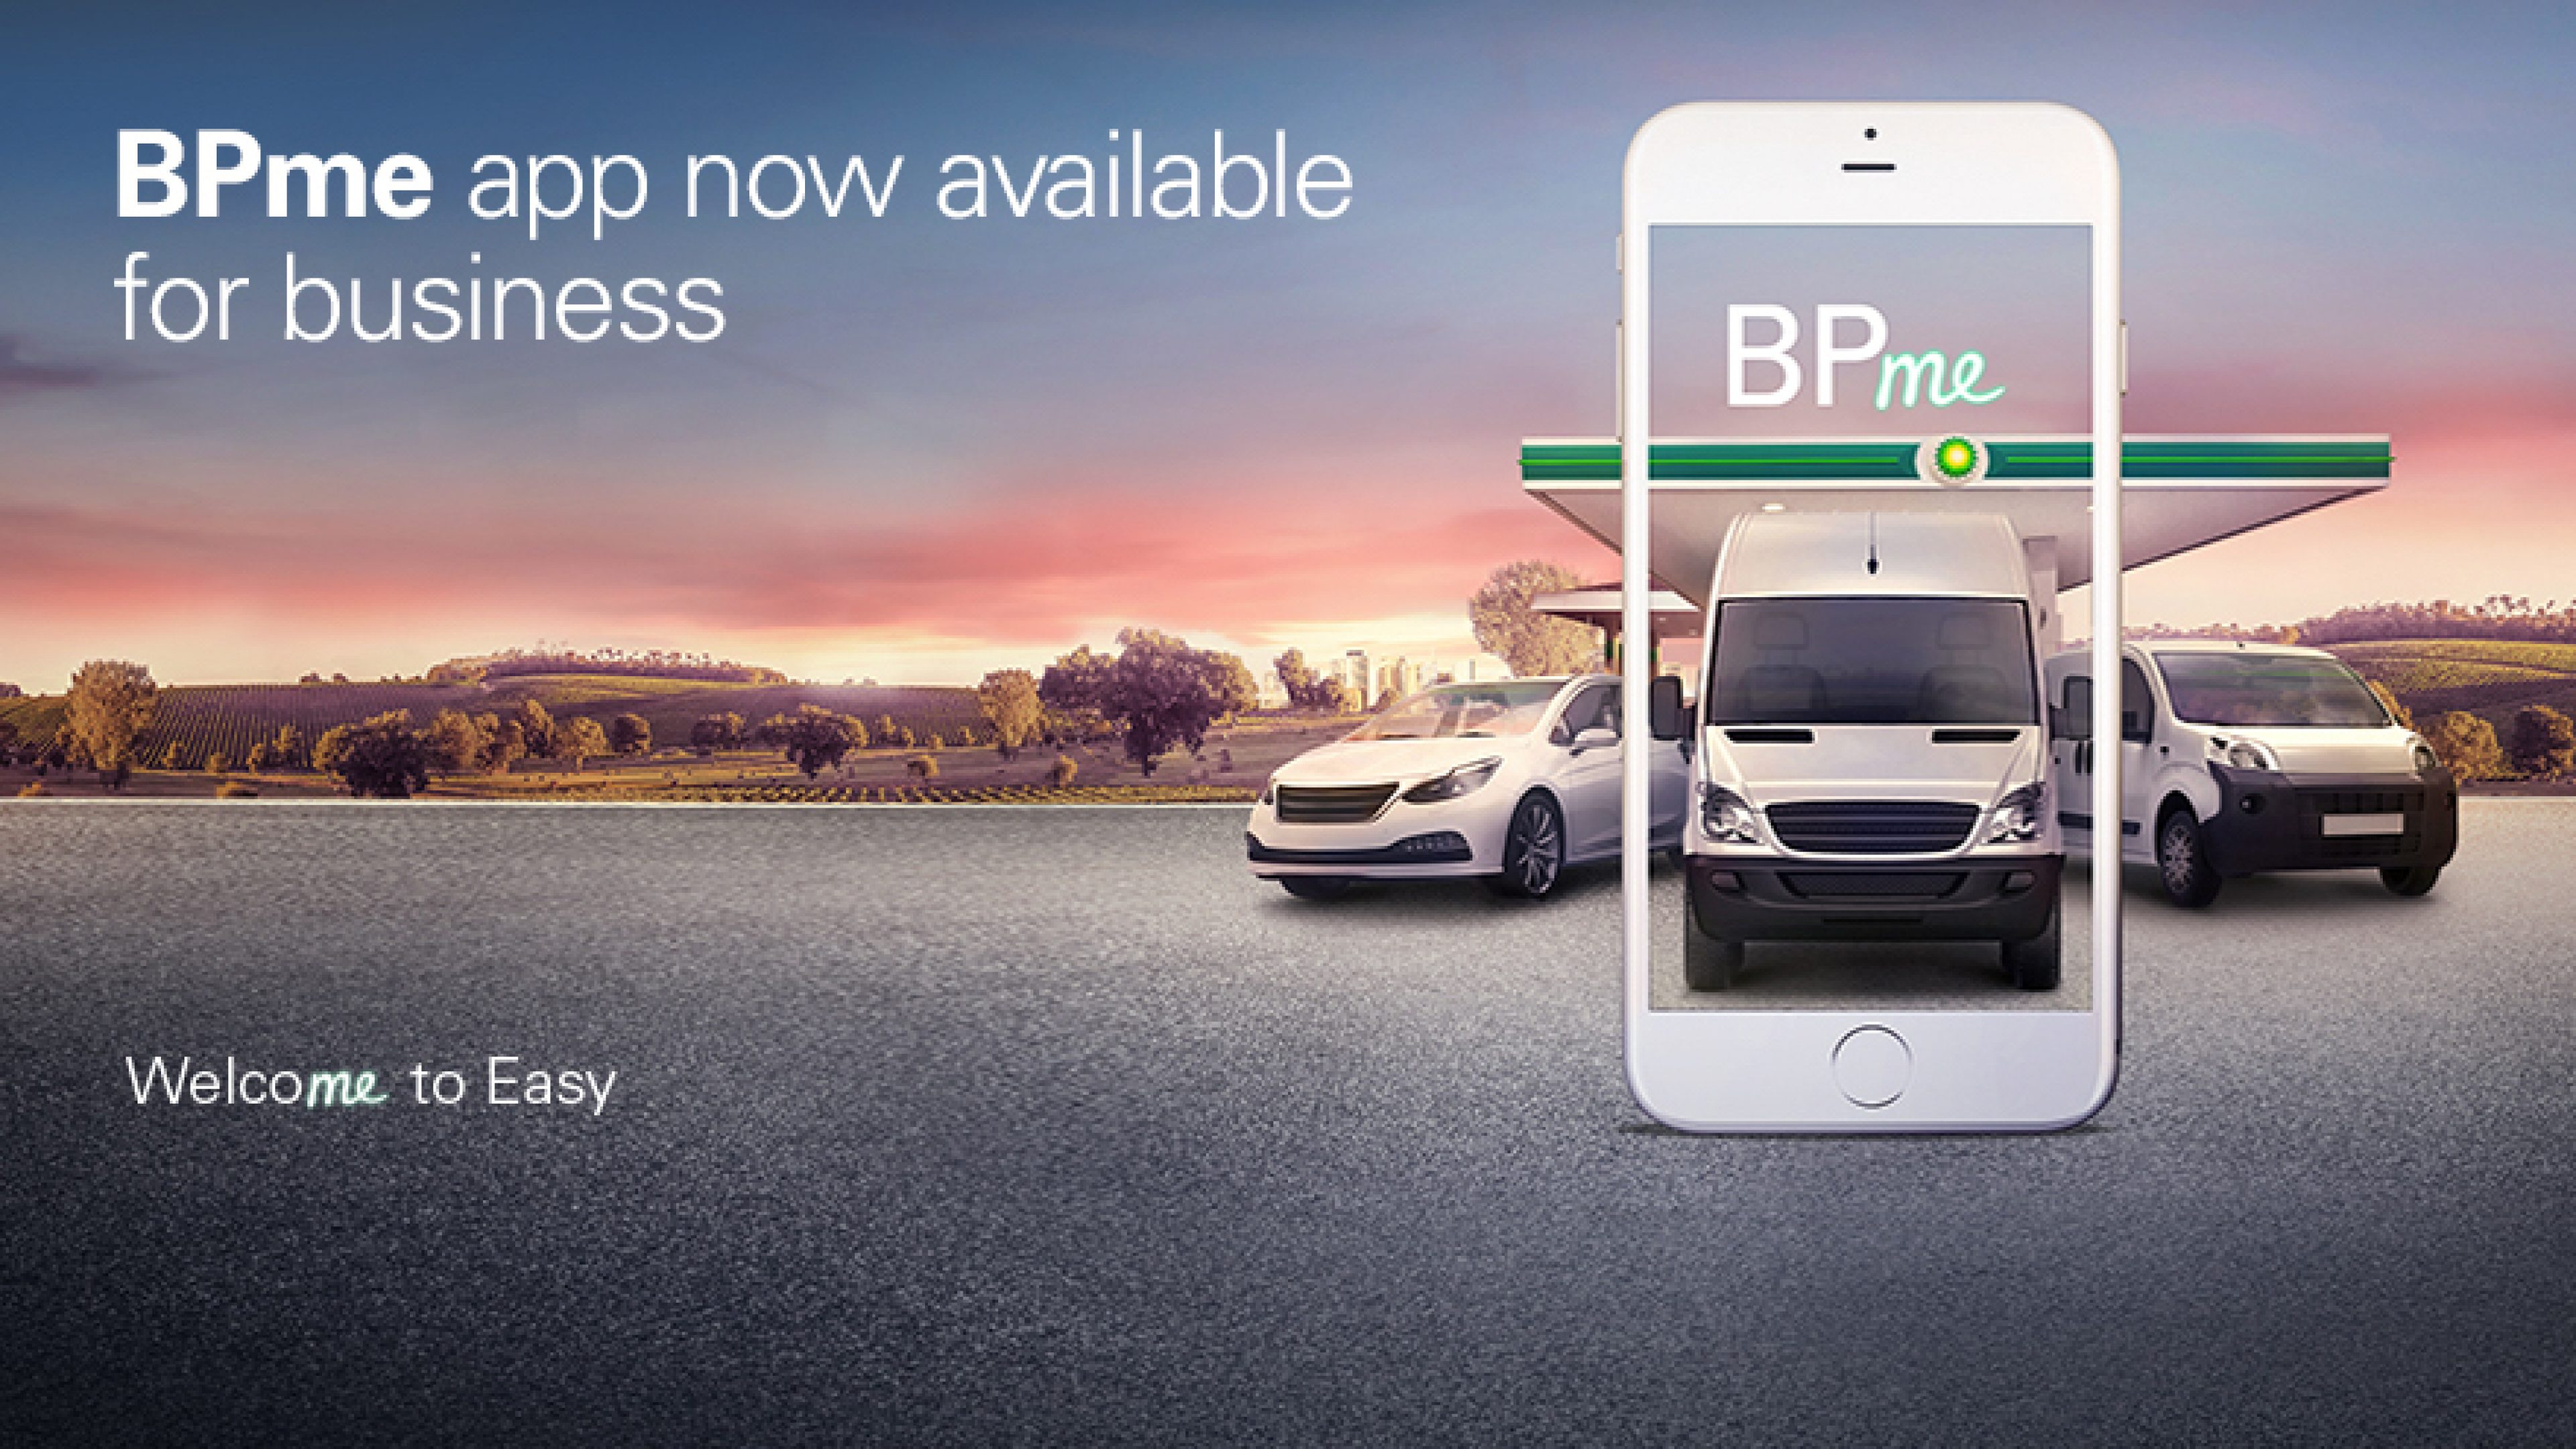 BPme app now available with fuel cards